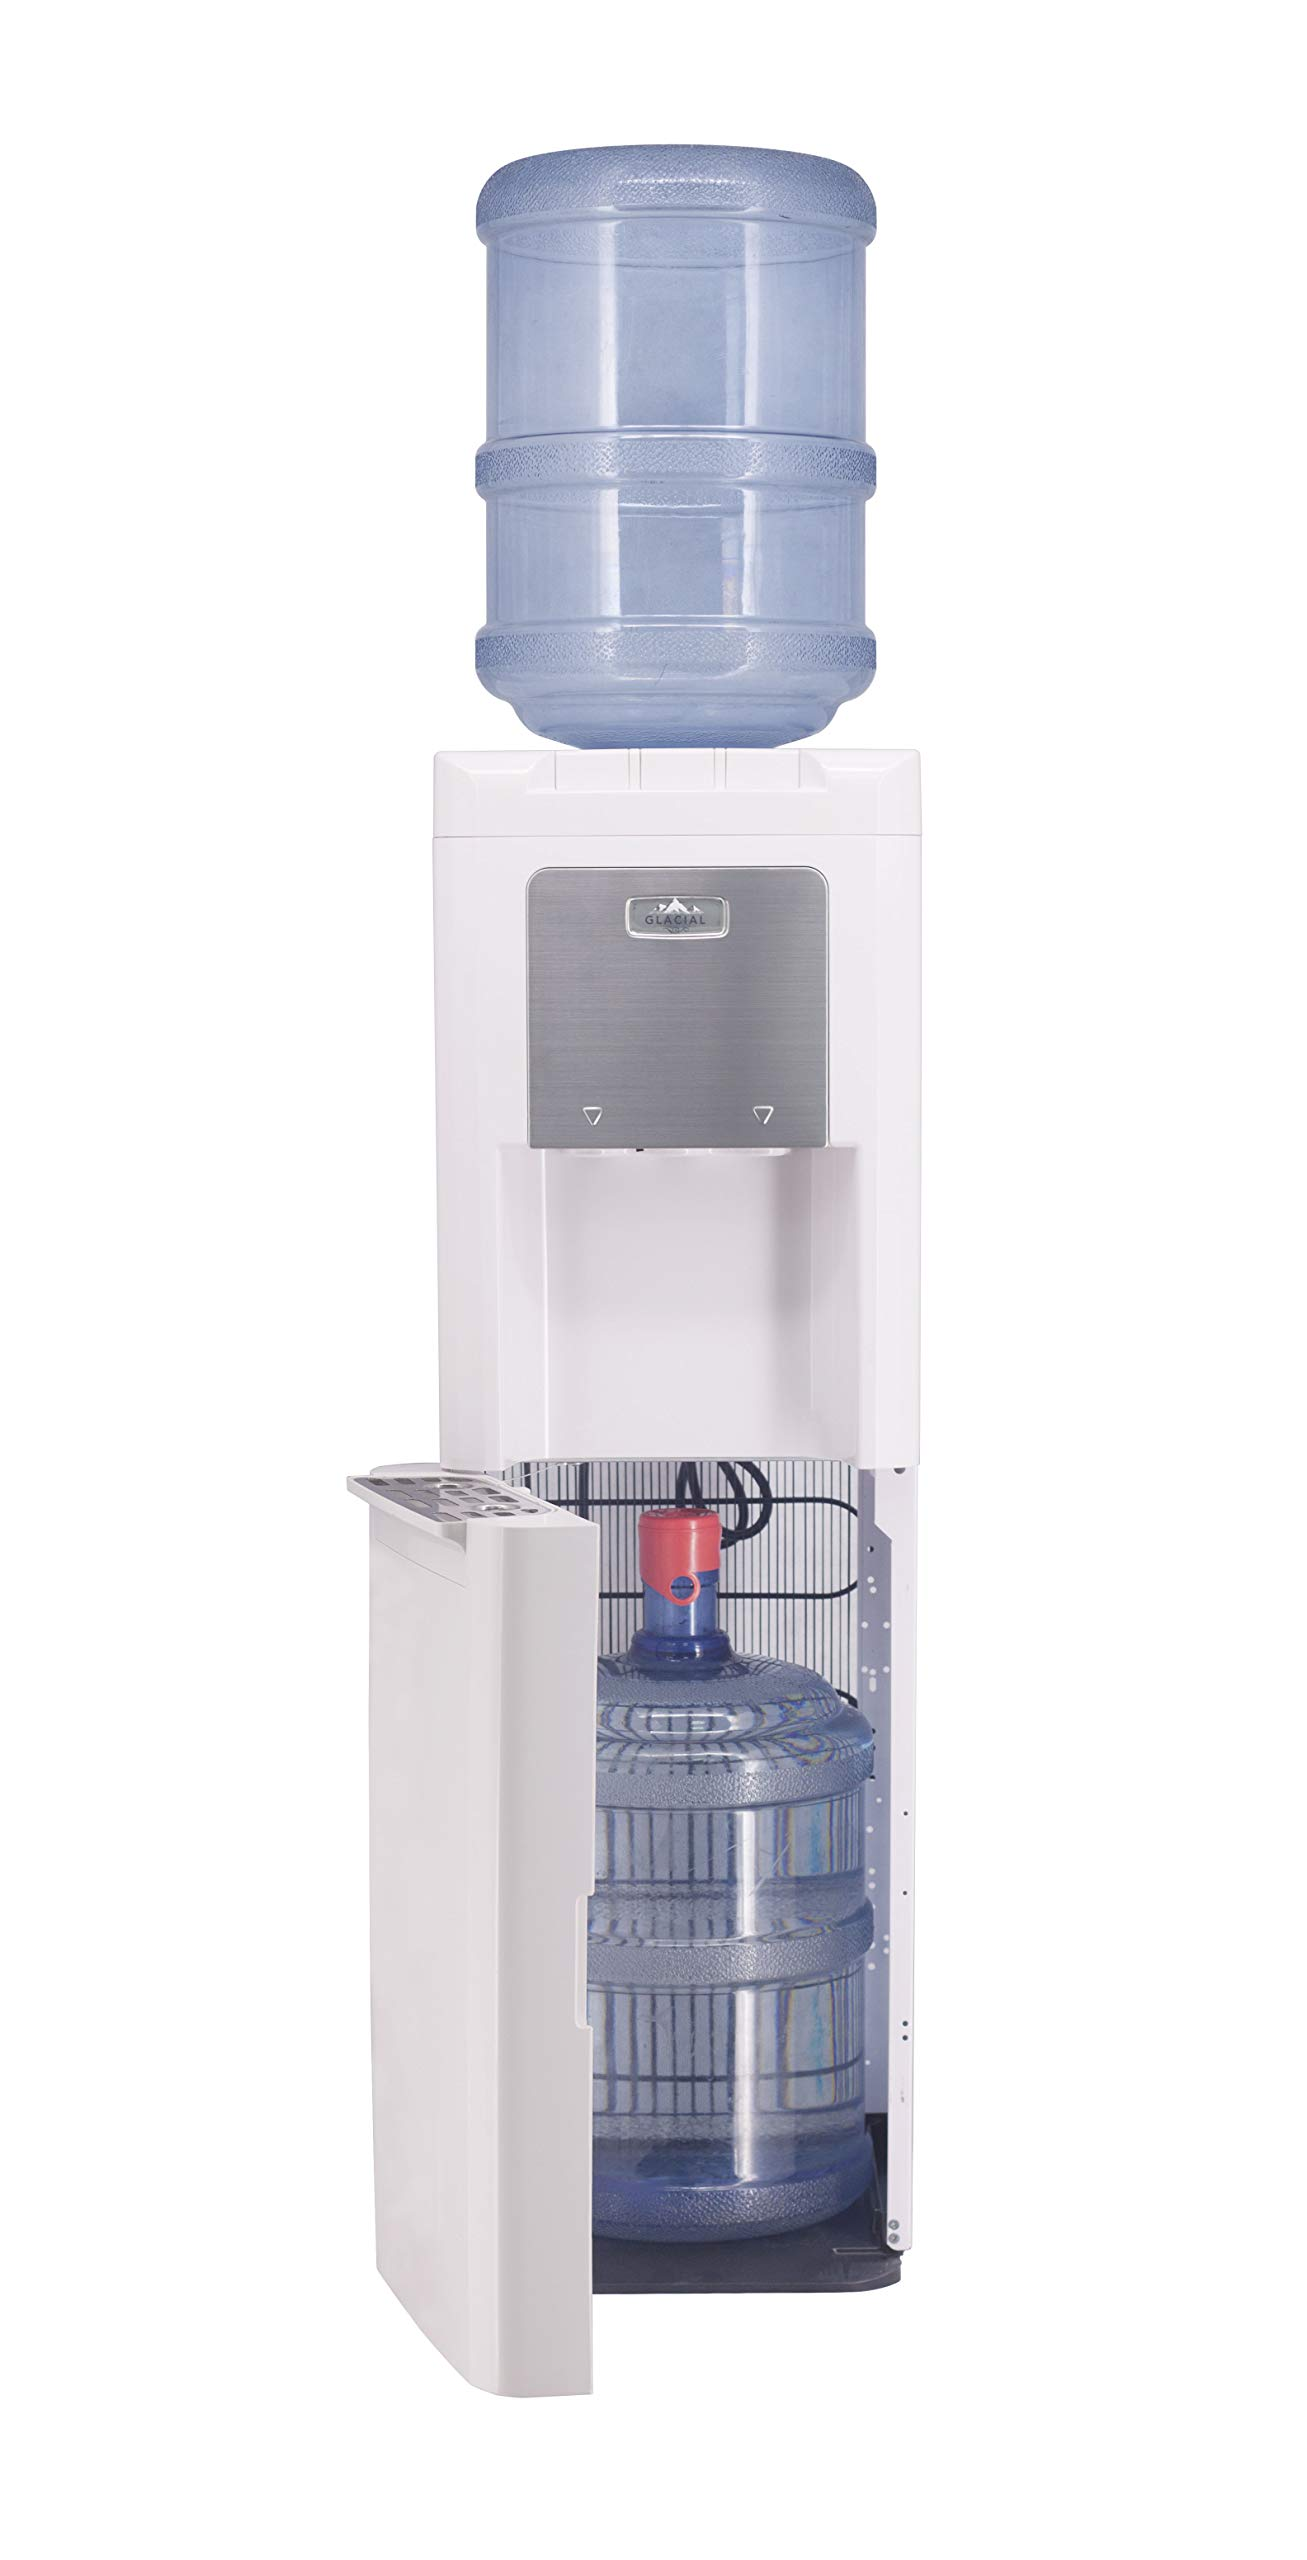 Glacial Extra Bottle Storage Water Cooler, with Ice Chilled Water, White and Stainless, Commercial Grade